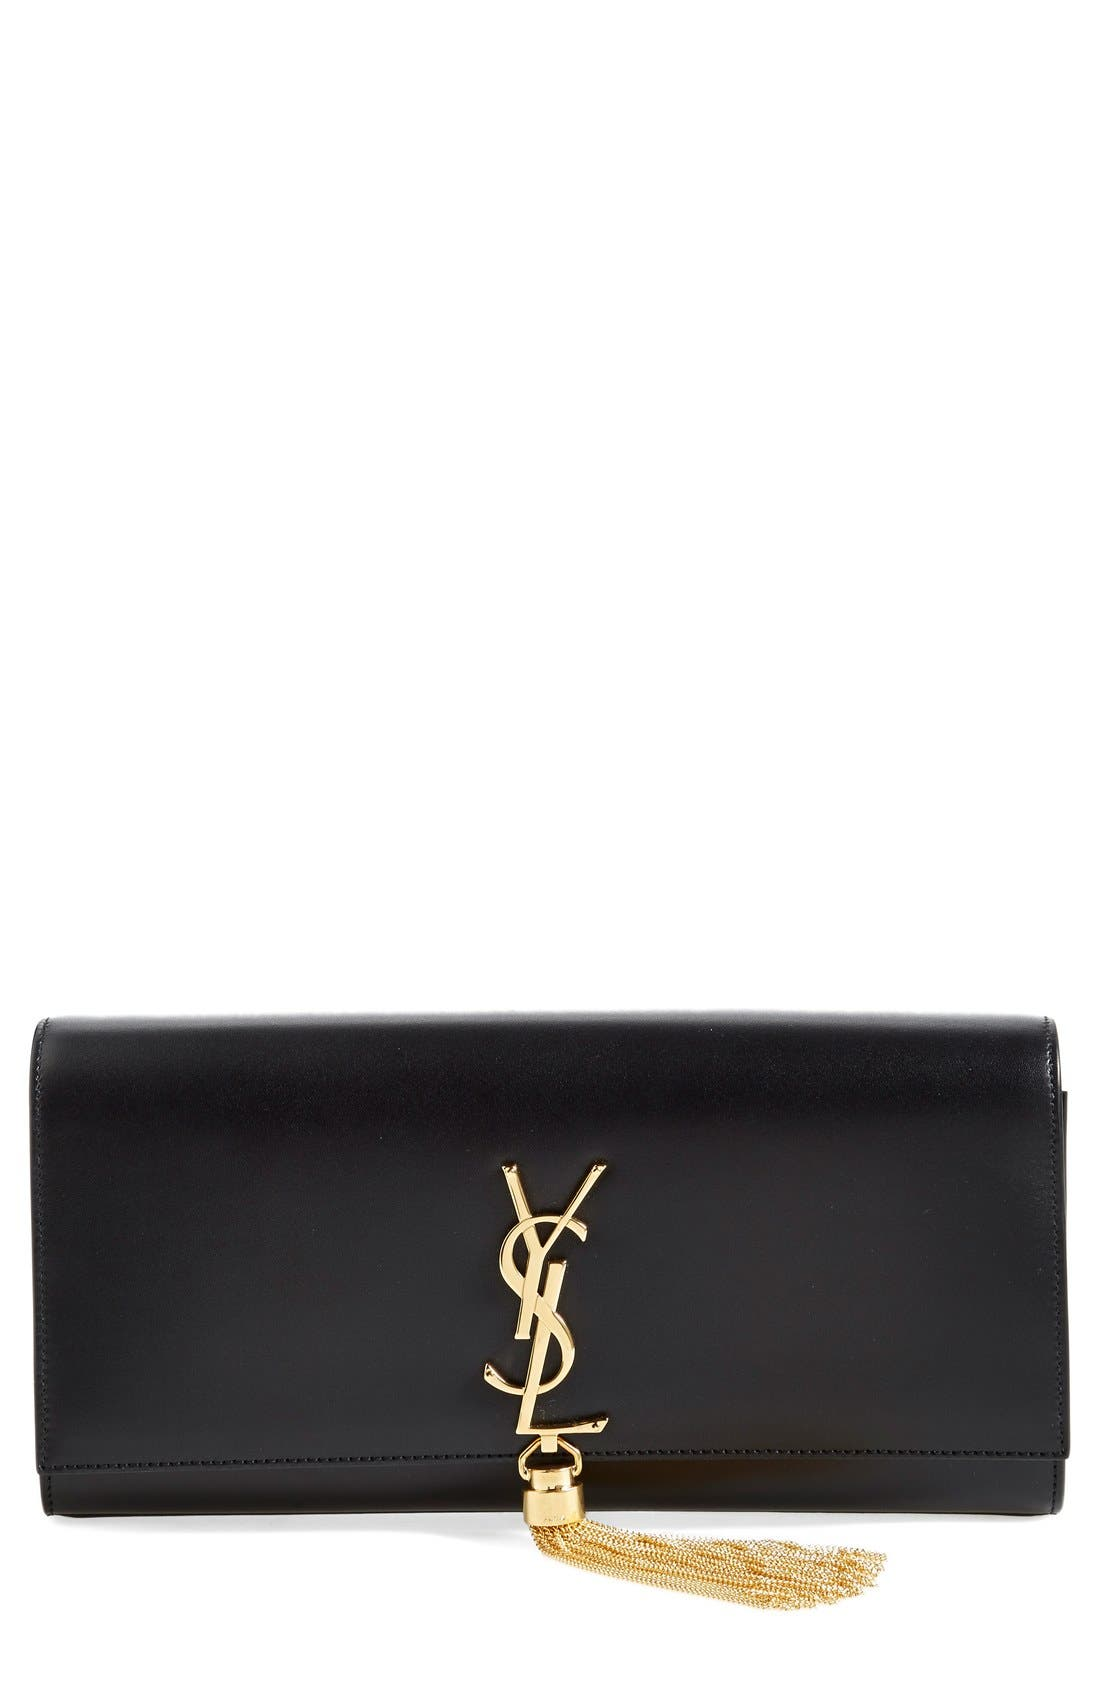 Alternate Image 1 Selected - Saint Laurent 'Cassandre' Tassel Leather Clutch